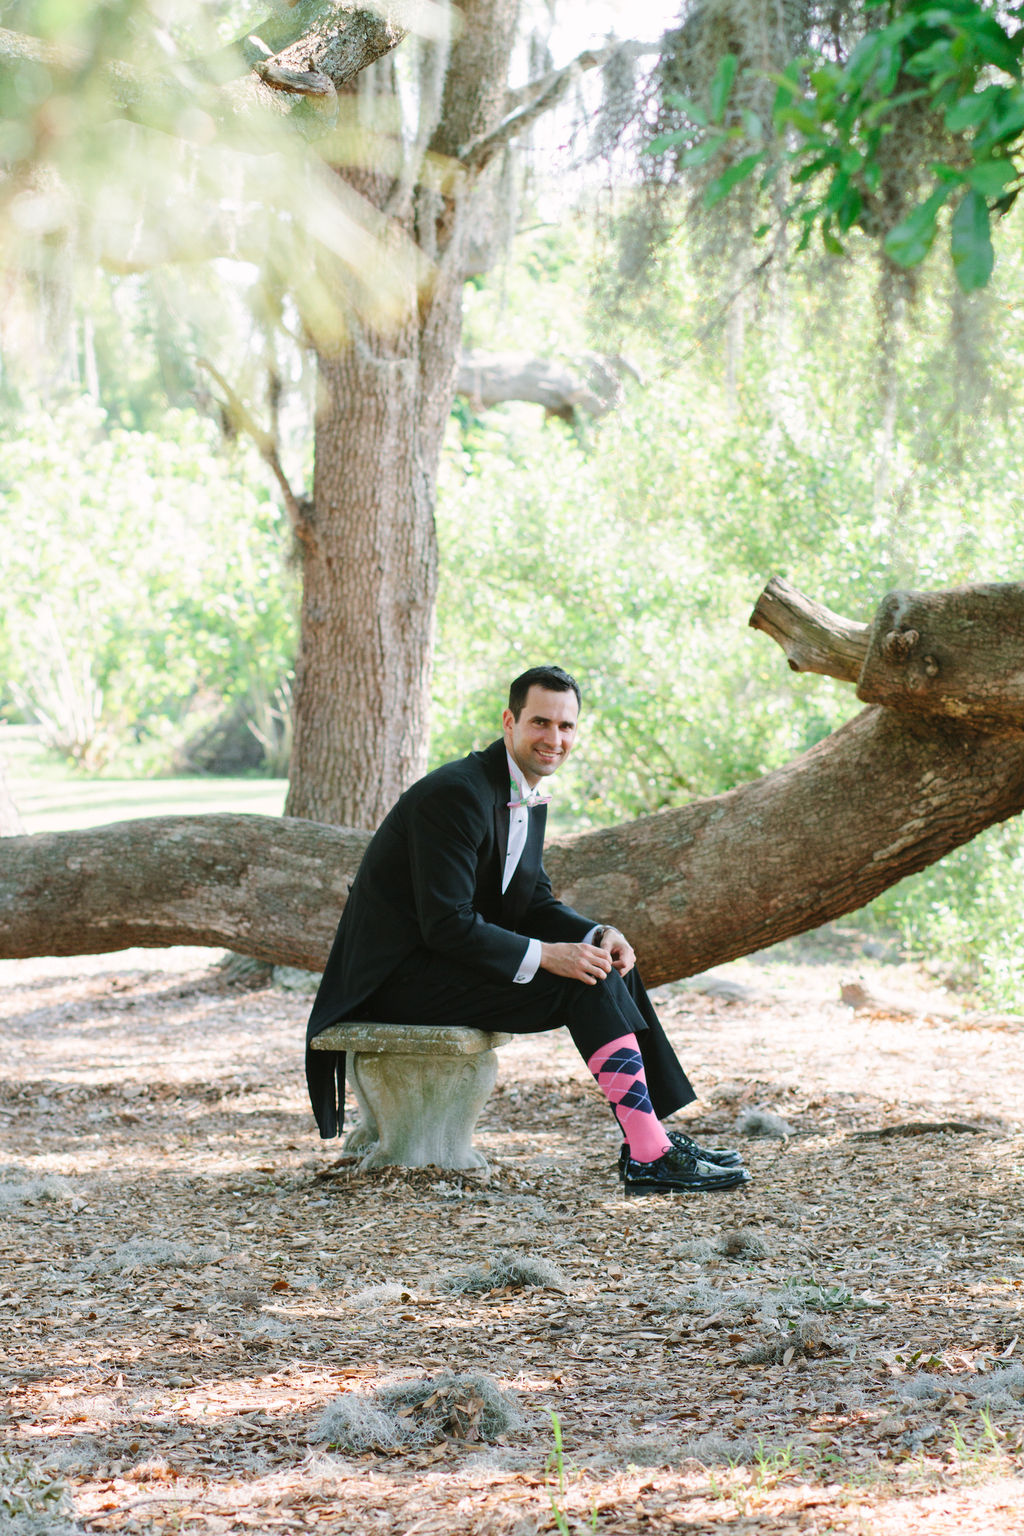 Classic groom shows off funky pink argyle socks